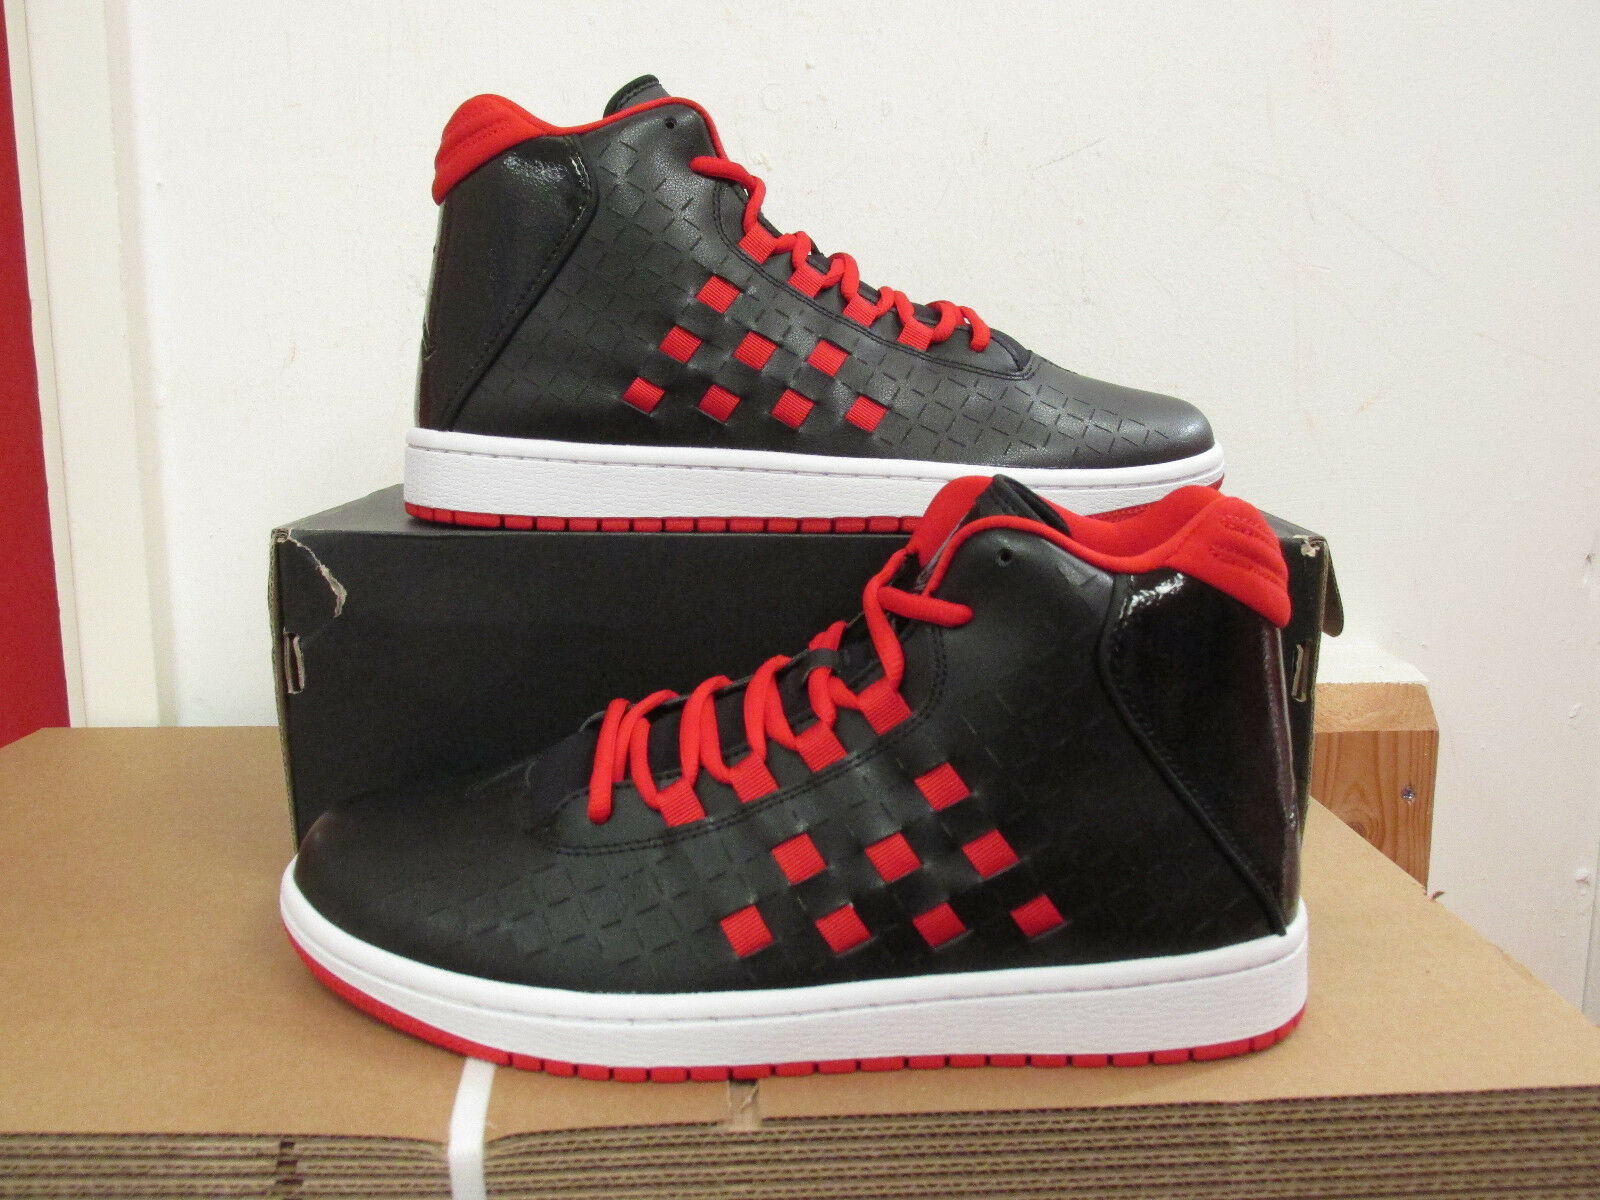 Nike Air Jordan Illusion trainers 705141 001 mens trainers Illusion sneakers CLEARANCE 8cca8b